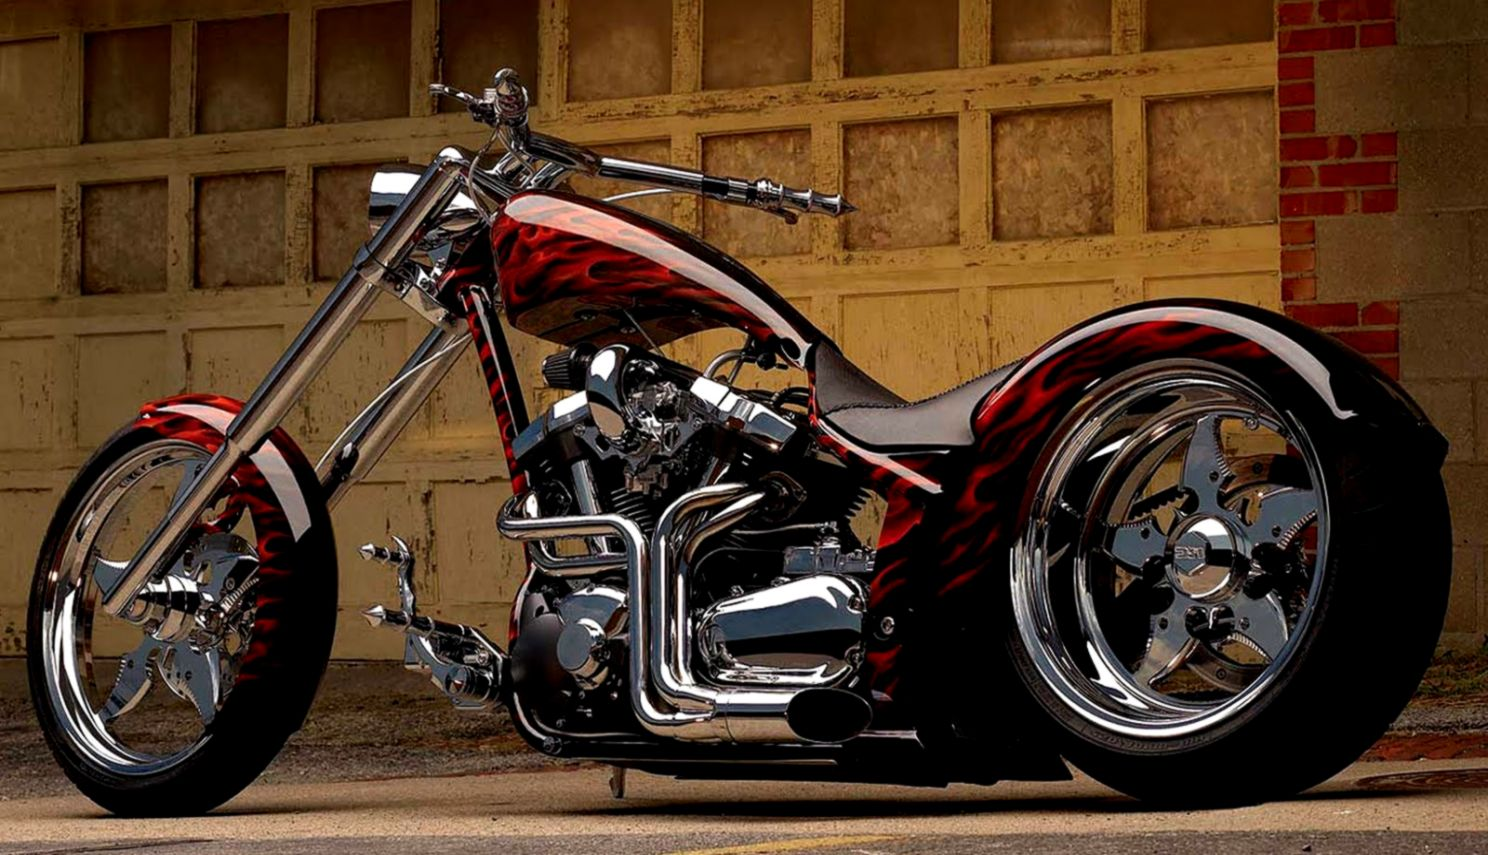 bike hd wallpaper free download | best image background